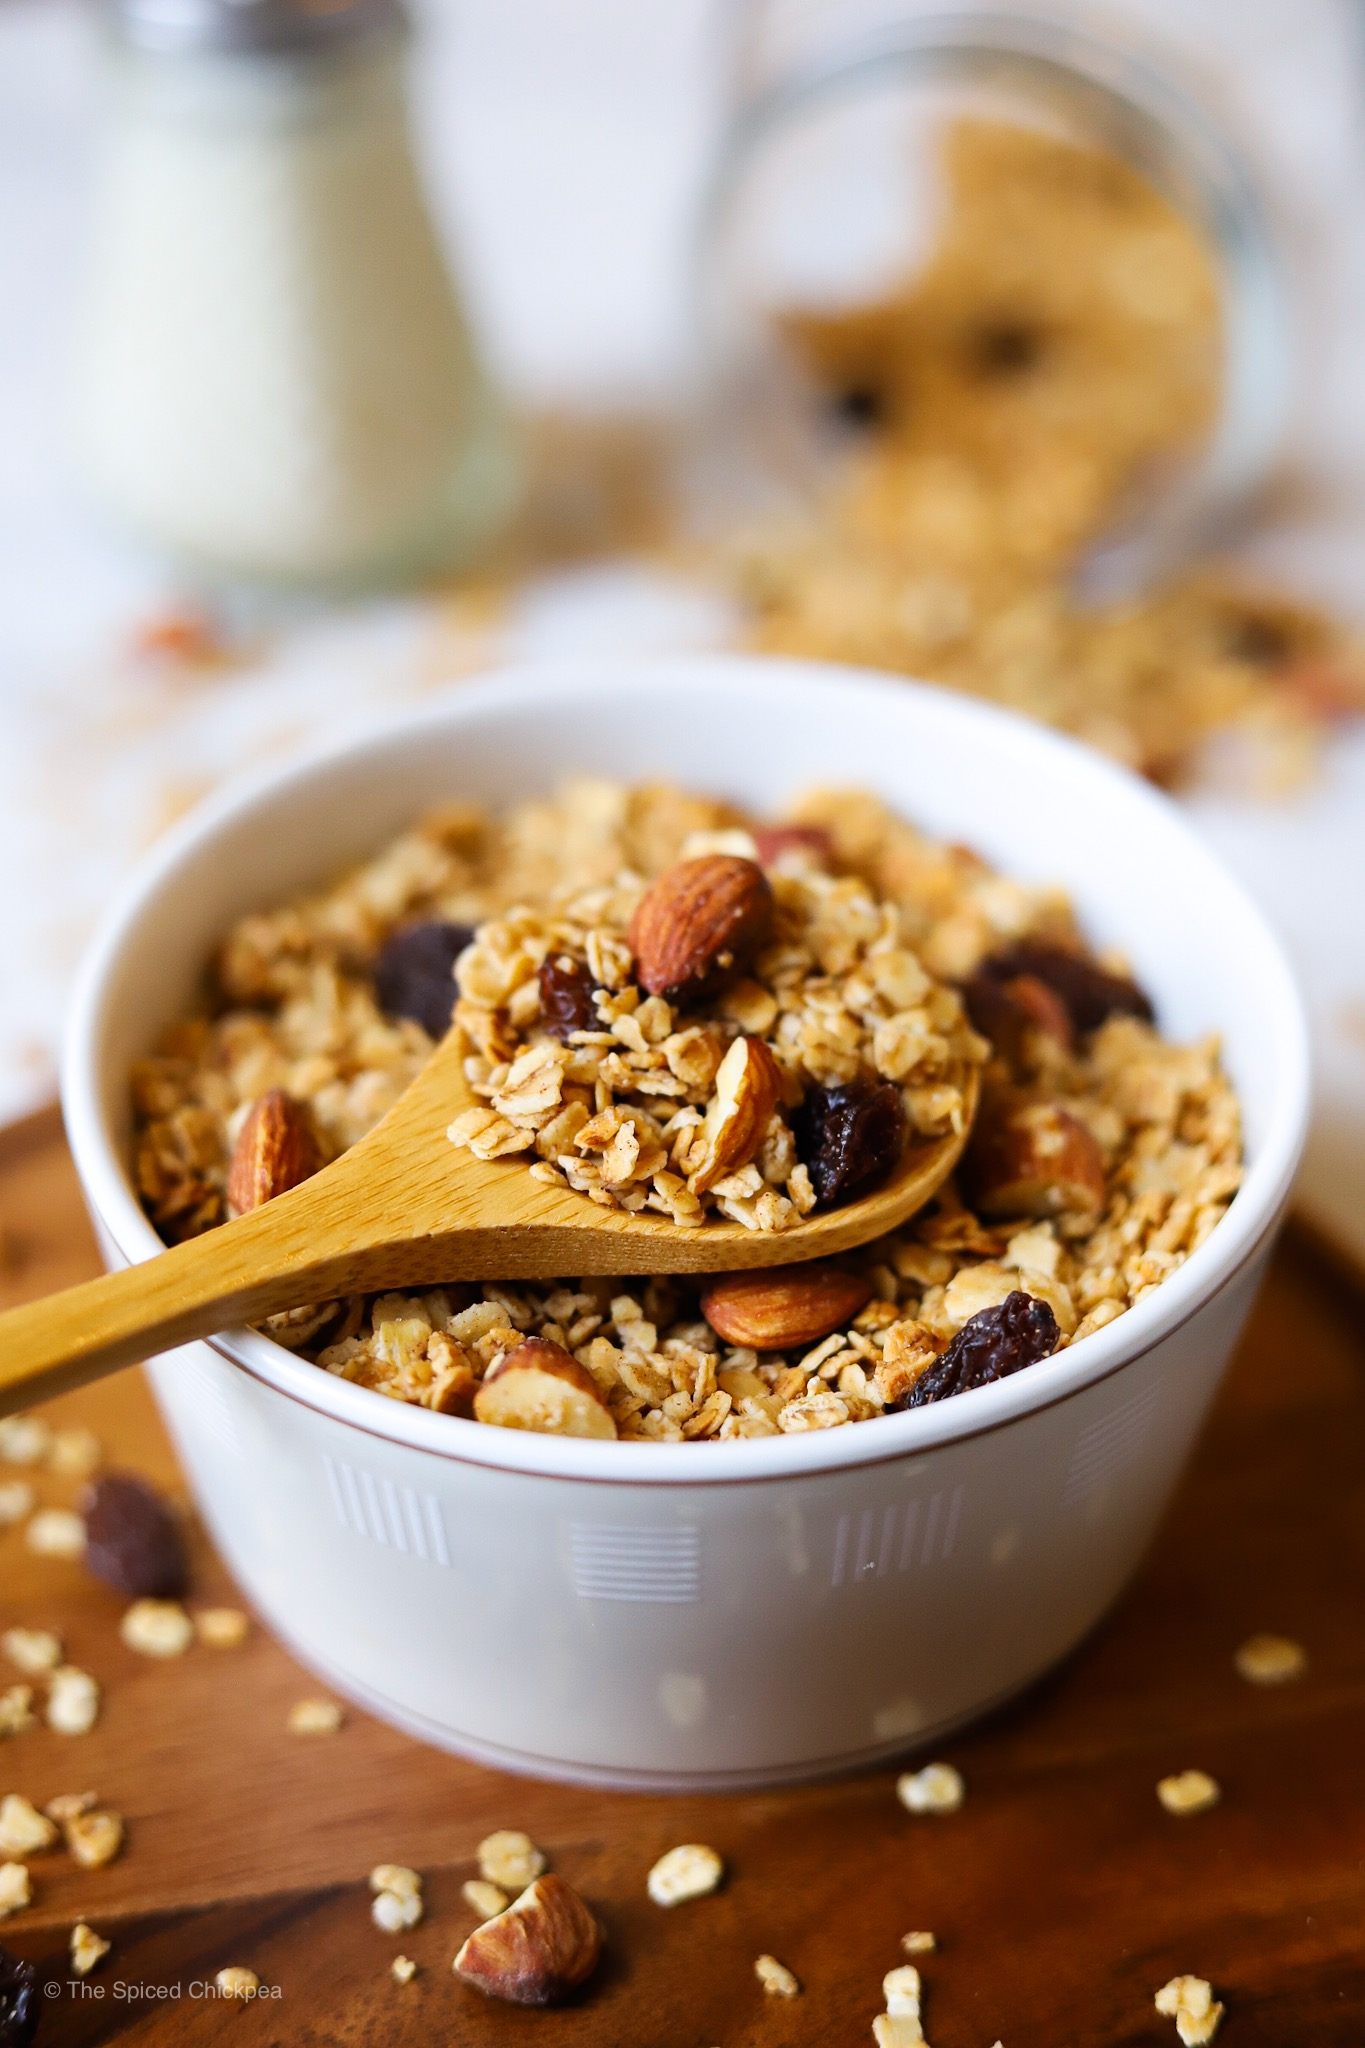 Add whatever mix-in to this Basic Granola recipe!